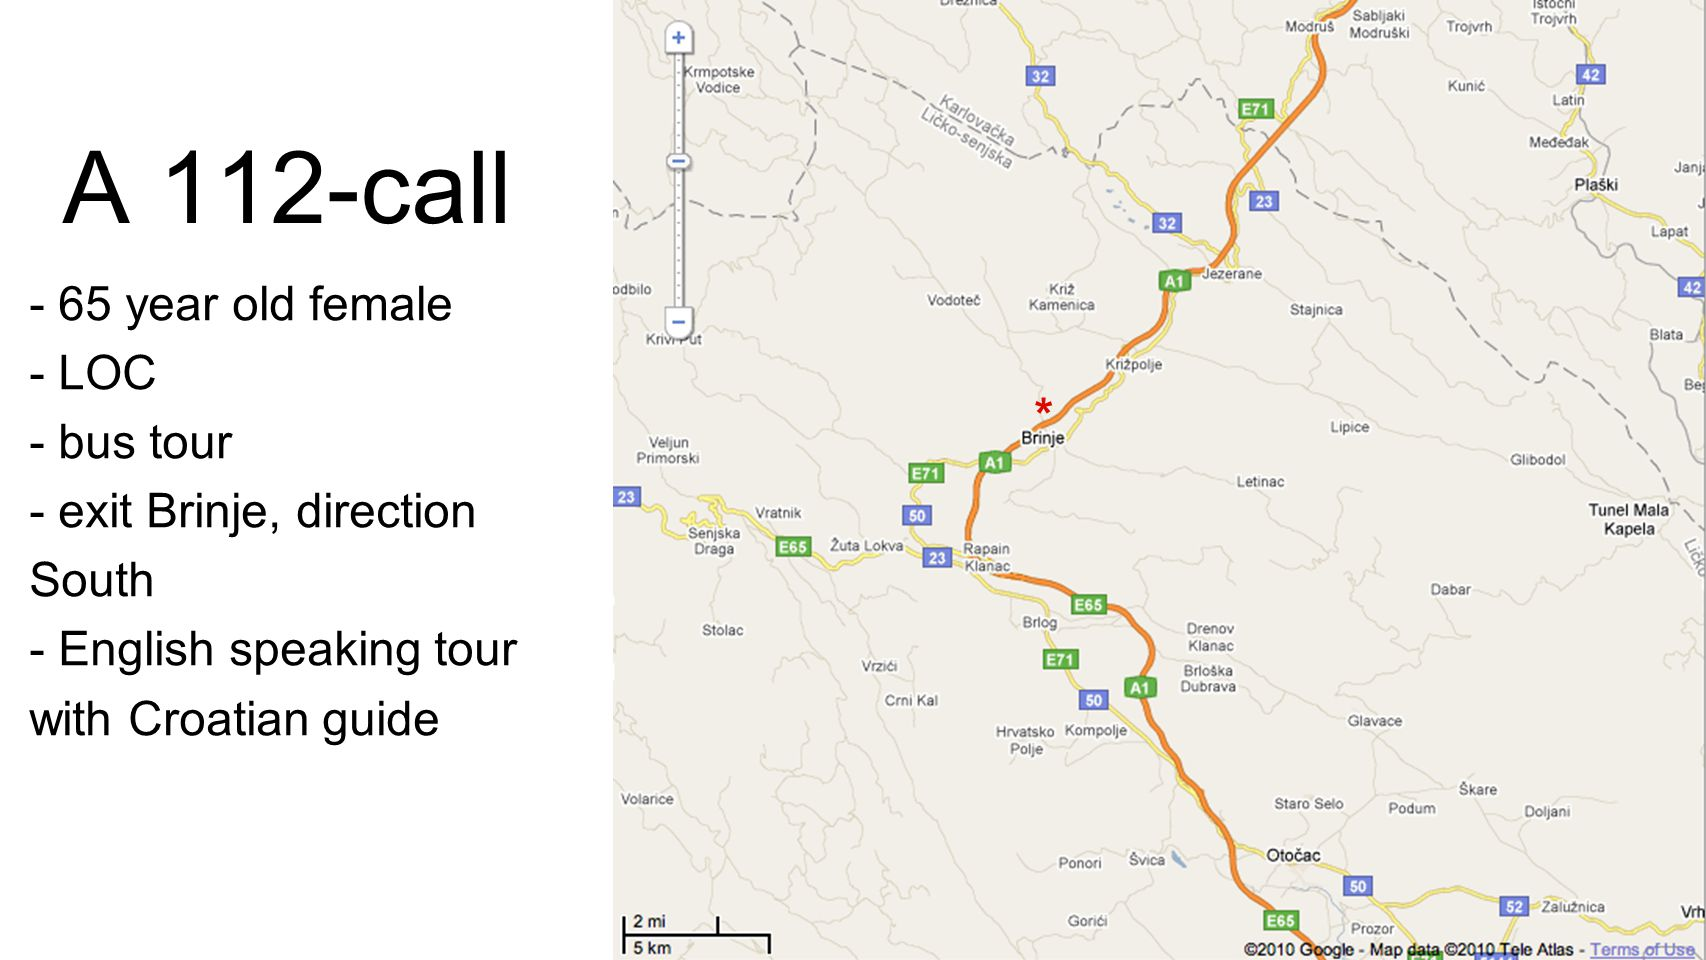 A 112-call - 65 year old female - LOC - bus tour - exit Brinje, direction South - English speaking tour with Croatian guide *